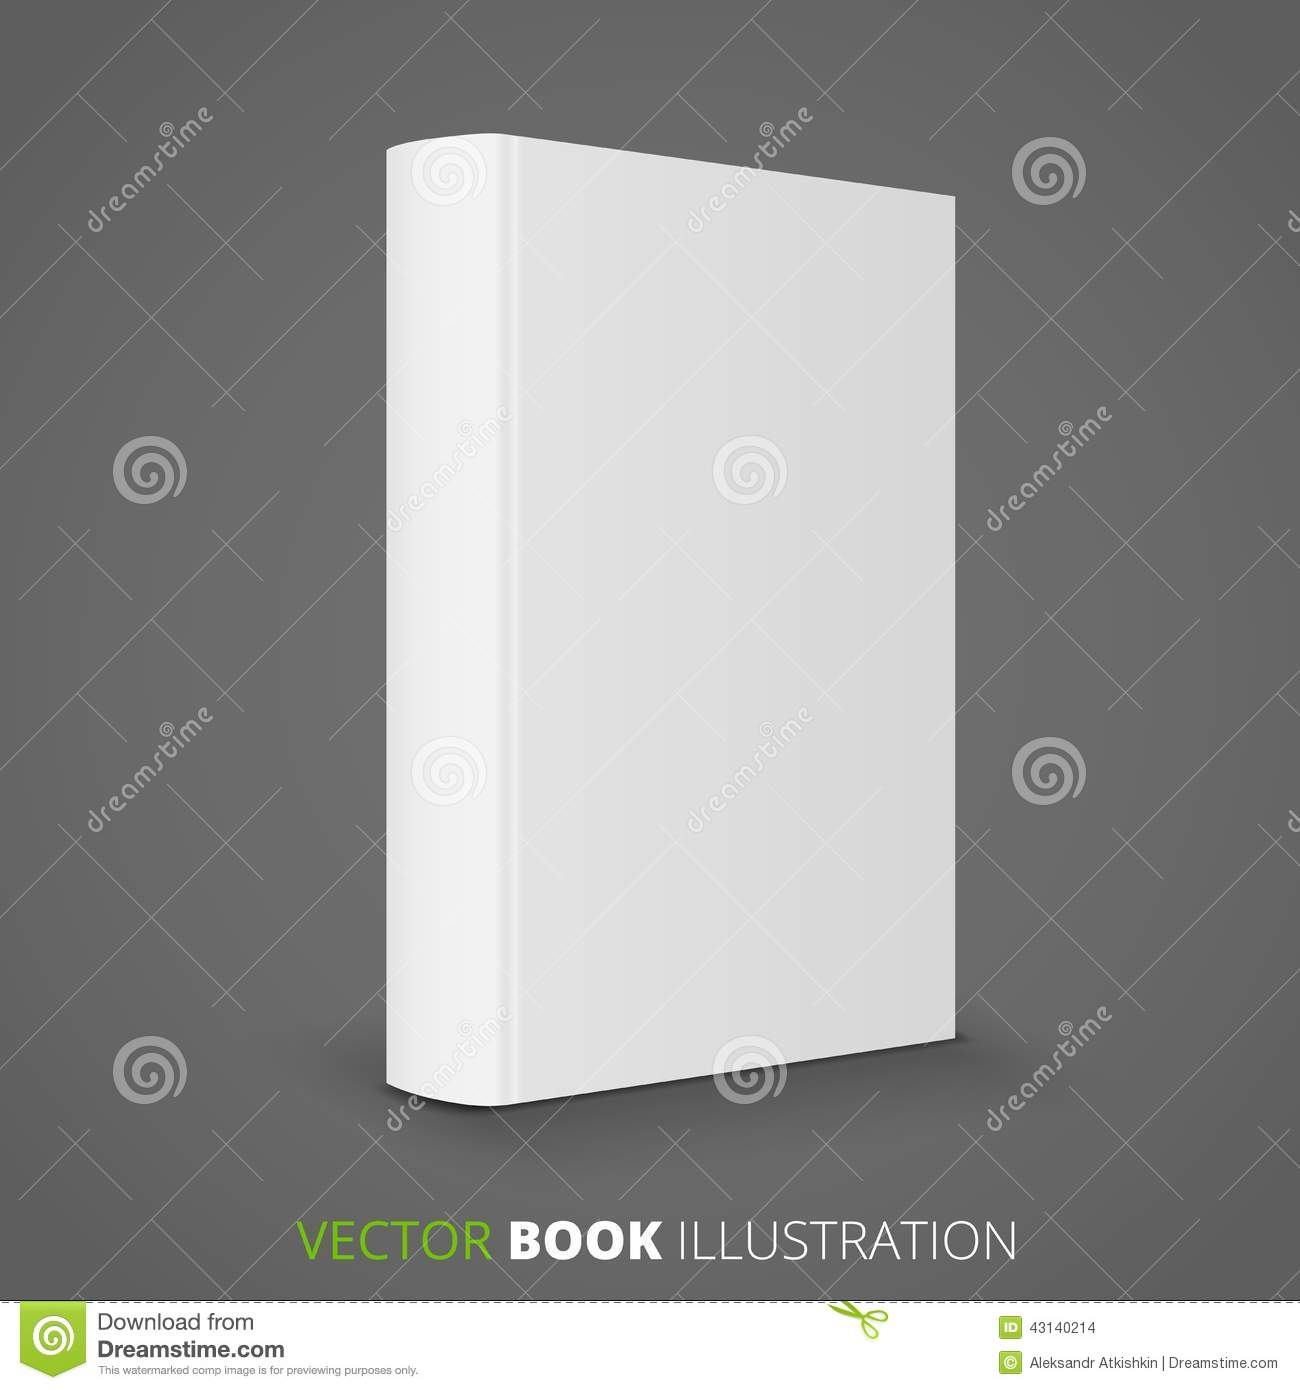 Blank Book Cover Vector Illustration Free ~ Blank book stock vector image of reading commercial